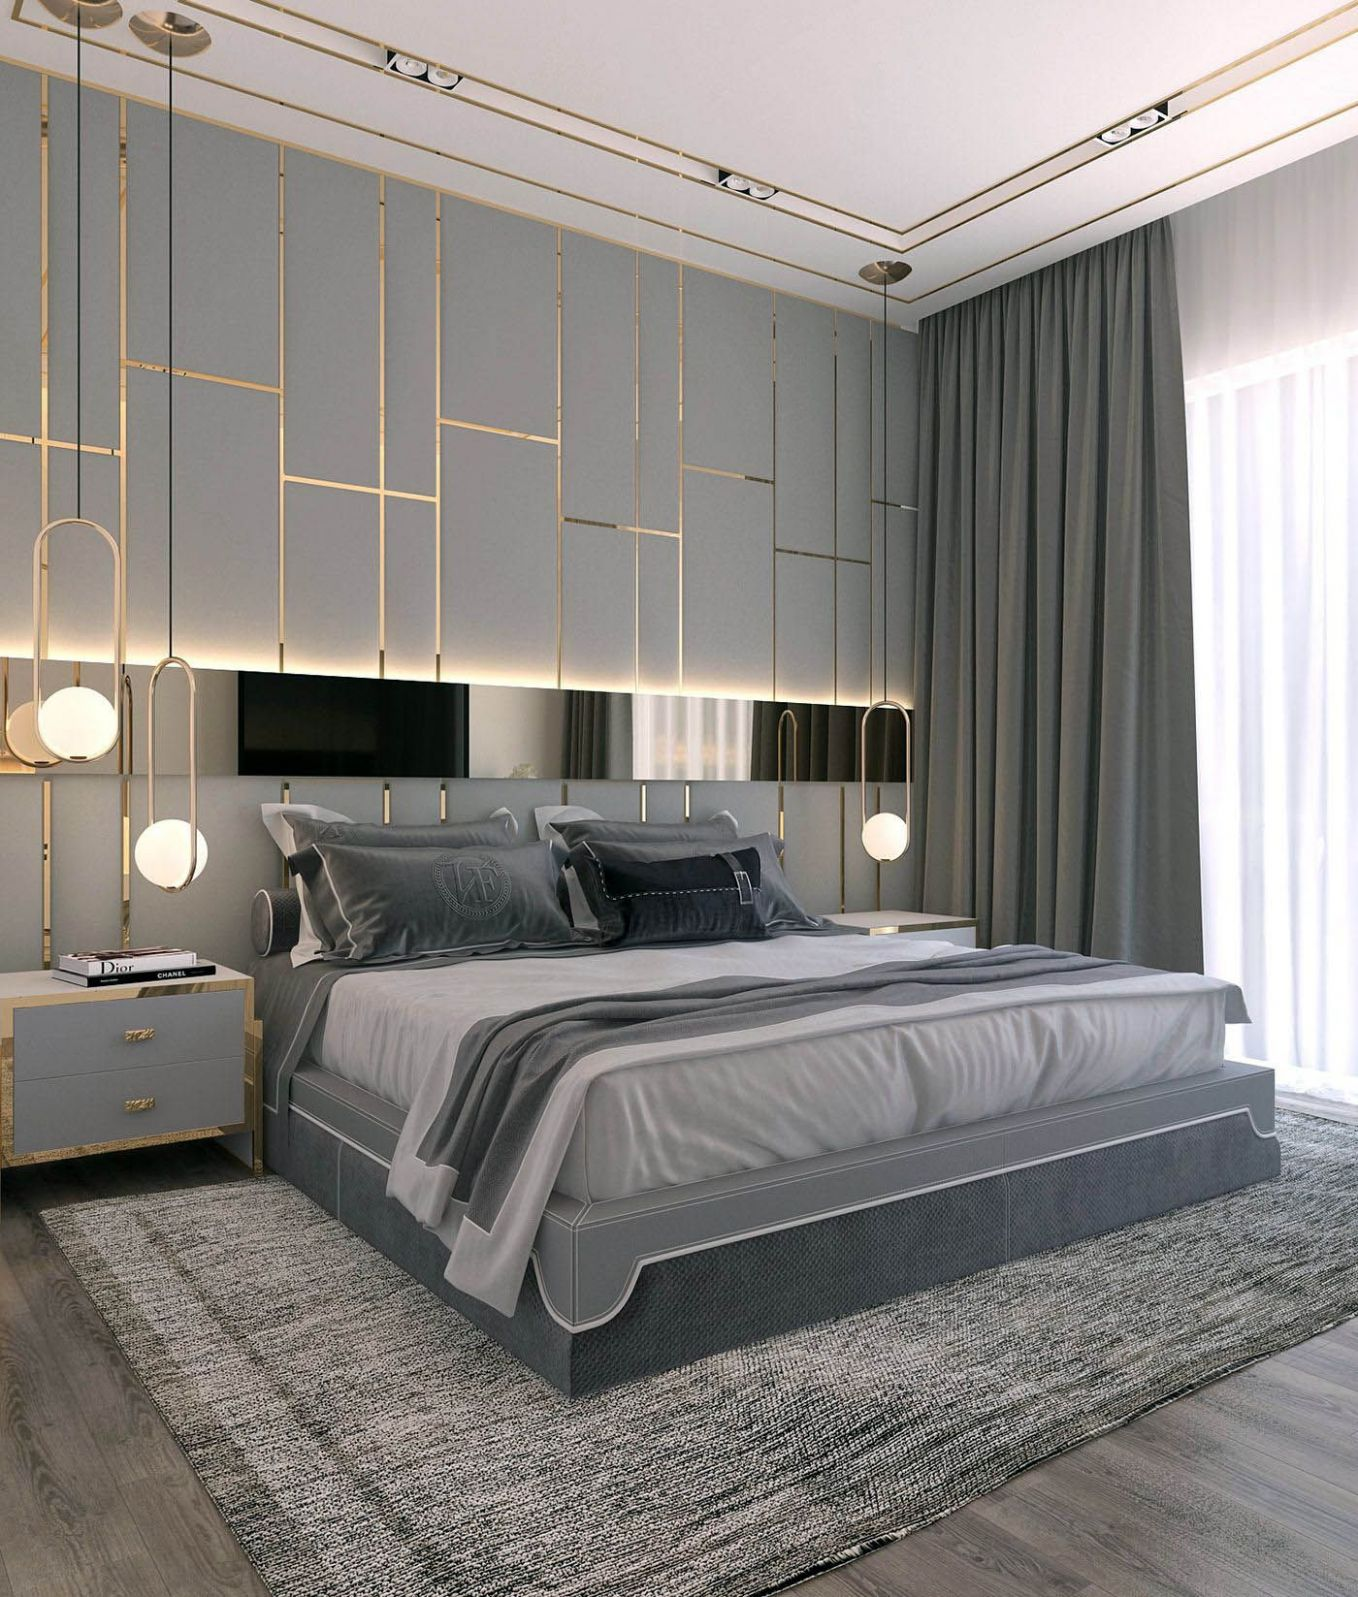 Good master bedroom ideas and colors made easy | Modern style ...